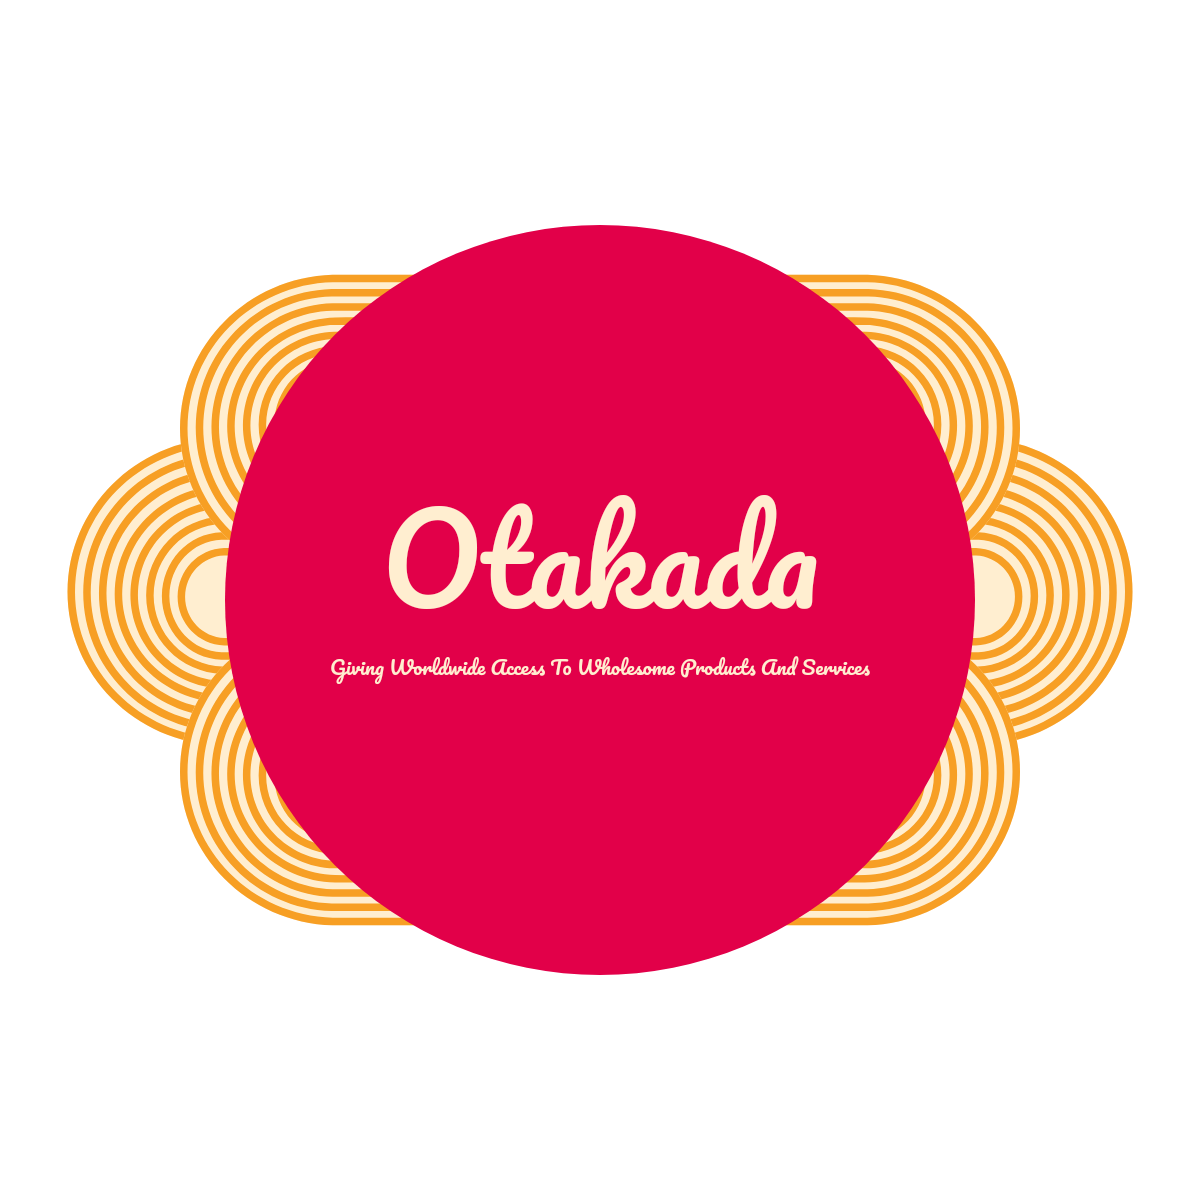 Otakada.org – Bringing You Over 500,000 Wholesome Products and Services For The Christian Community all in one place